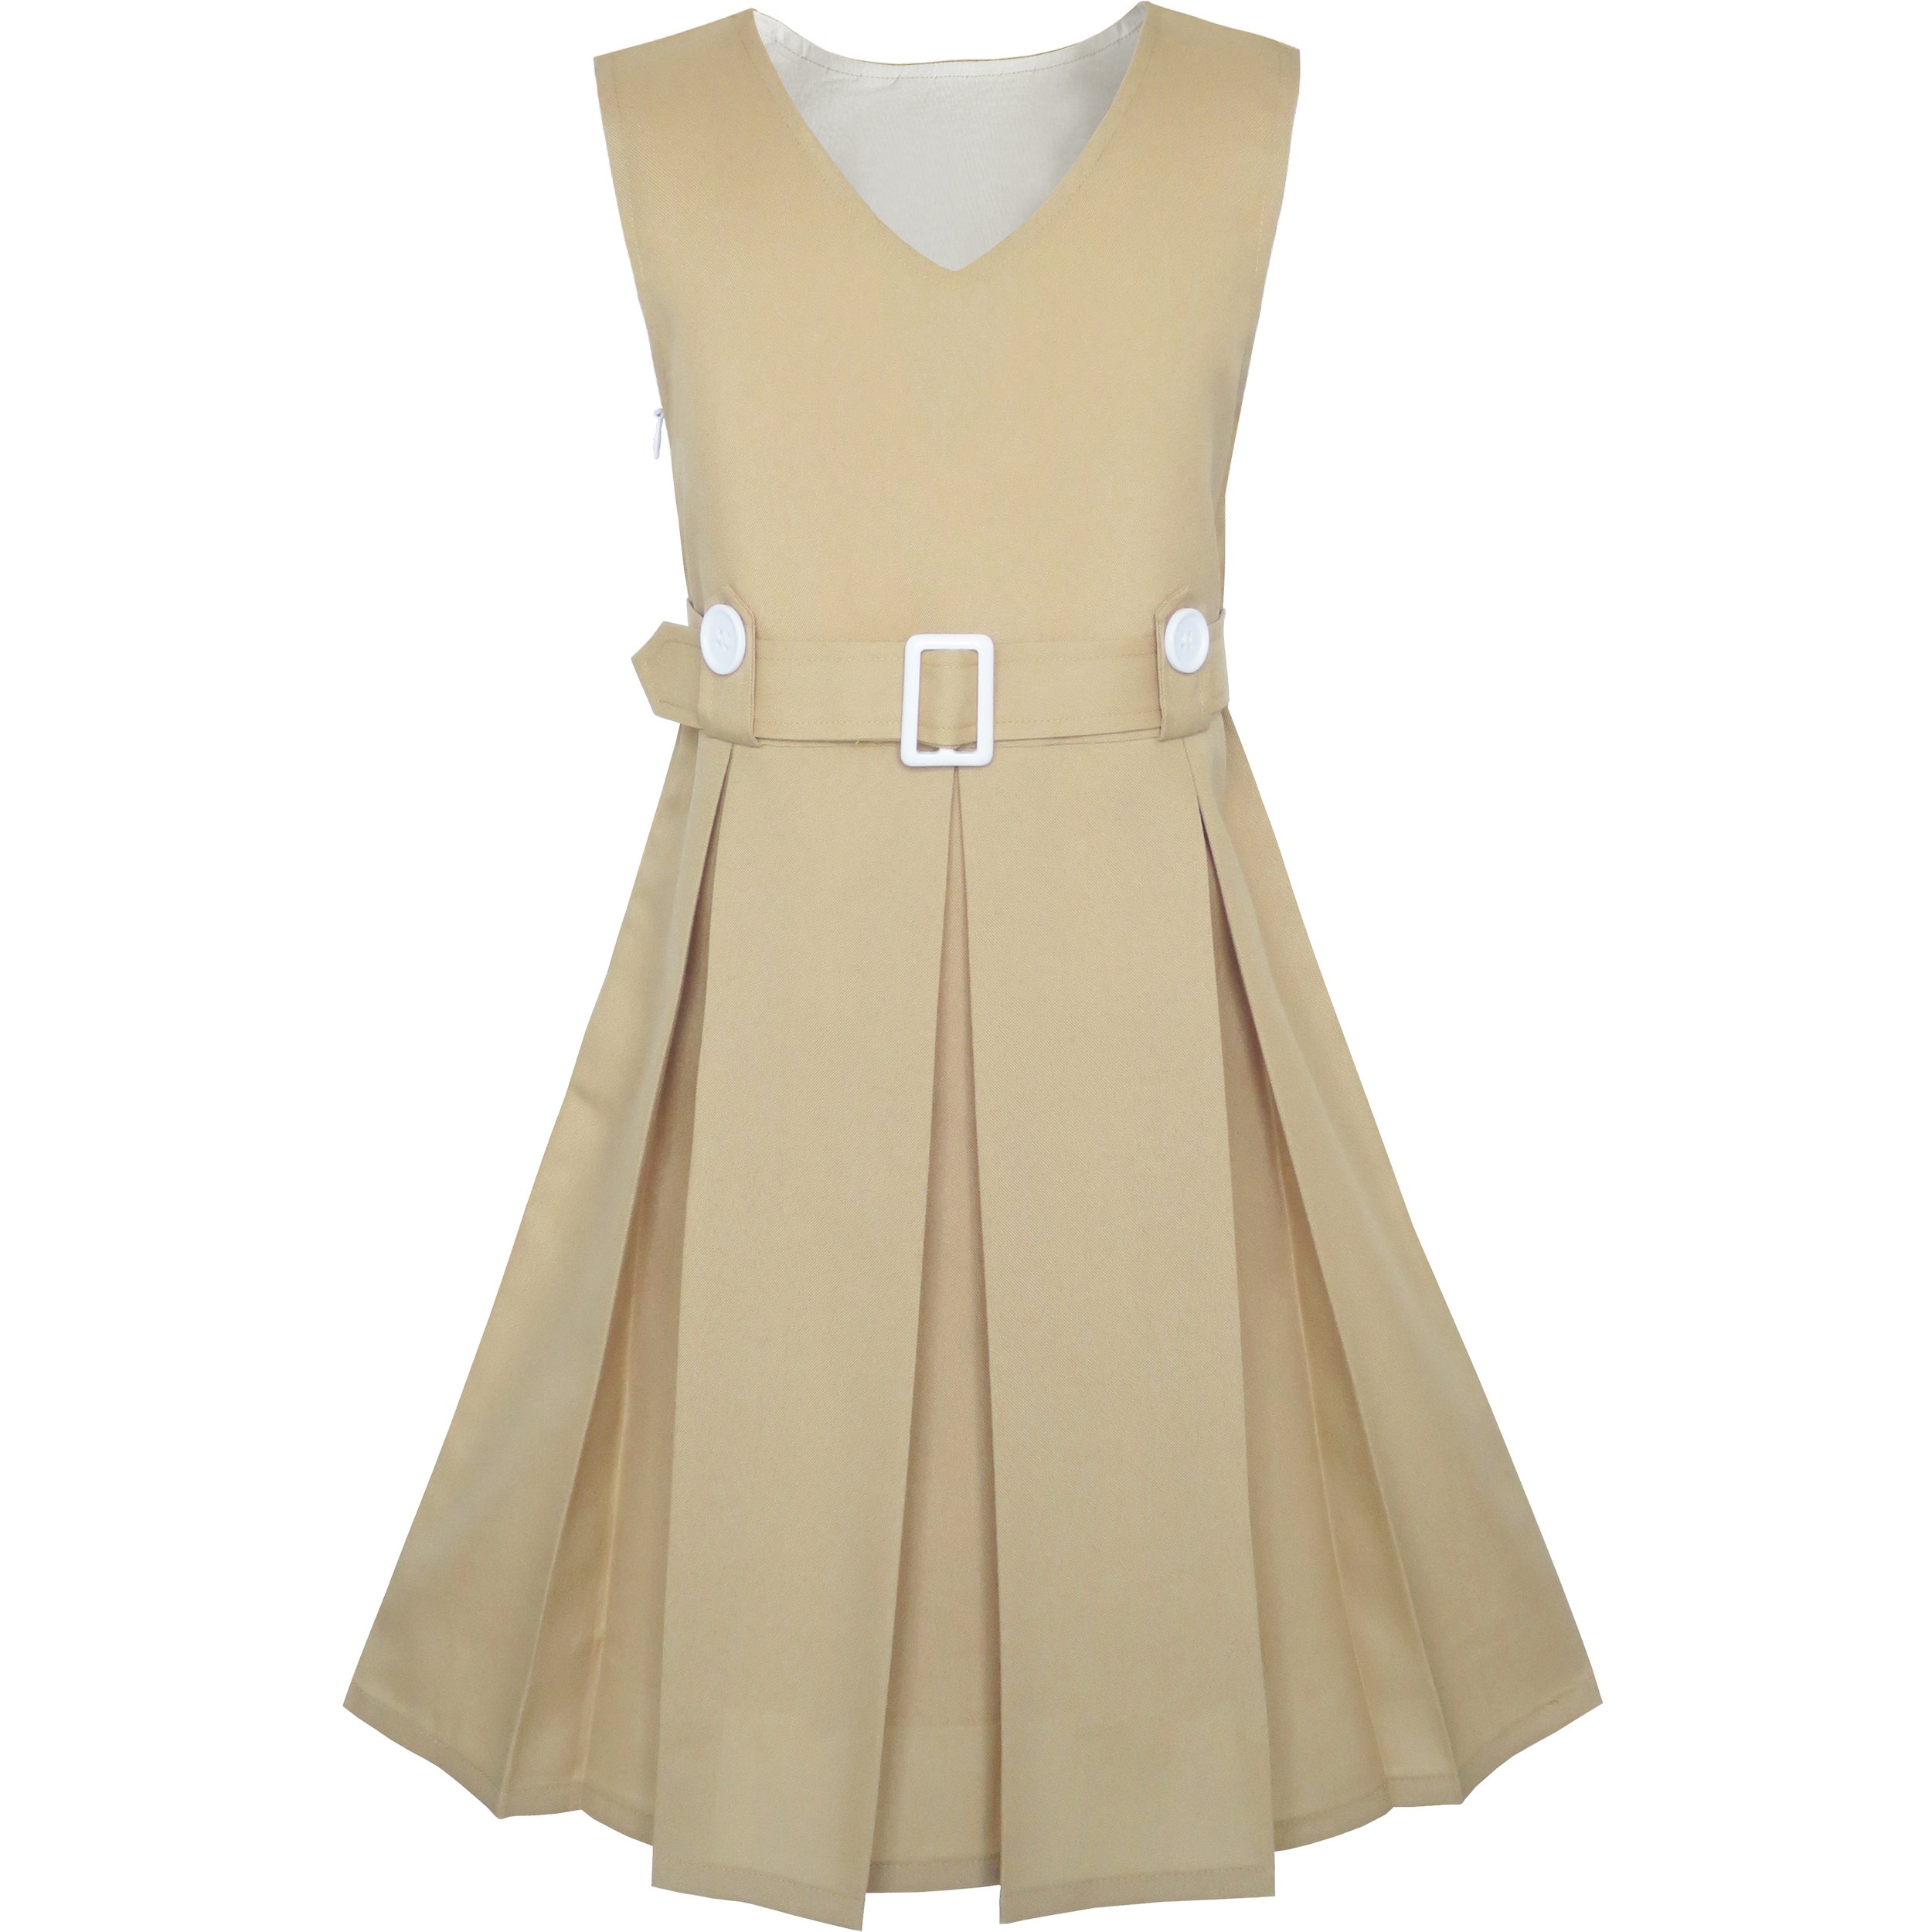 KS91 Girls Dress Khaki Button Back School Pleated Hem Size 6